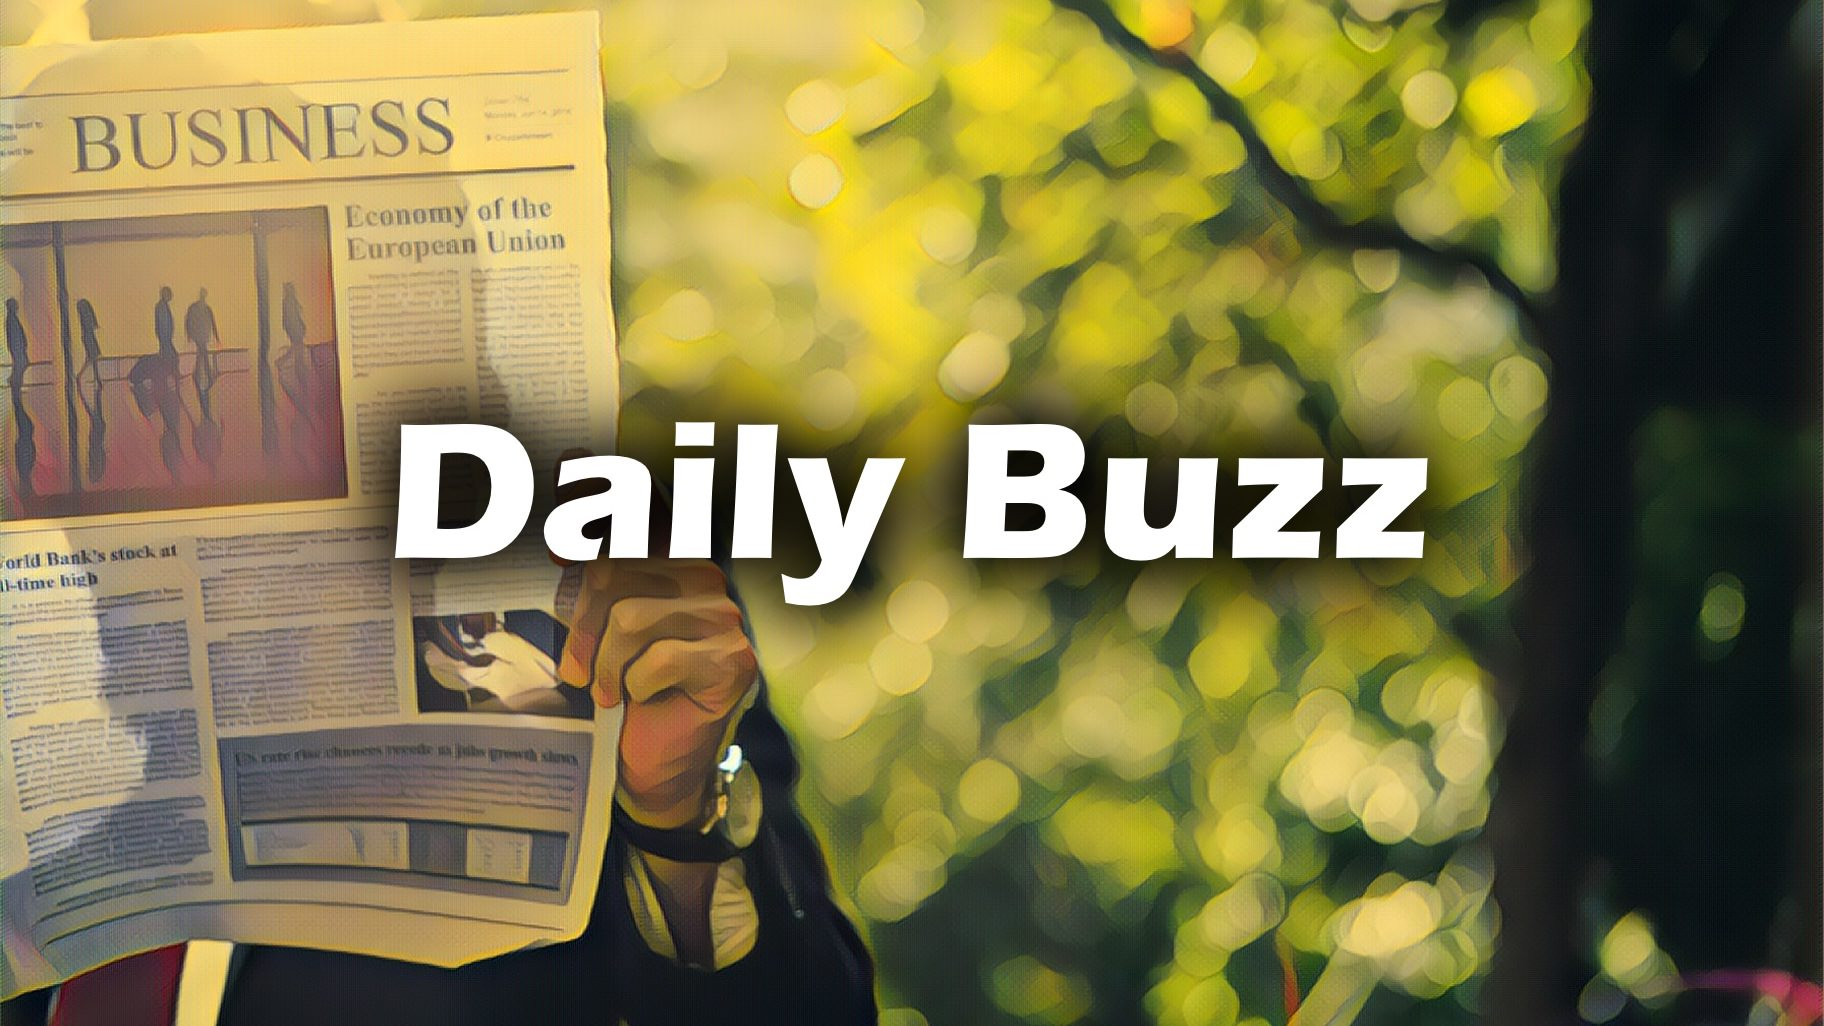 DailyBuzz Thursday 8 November 2018